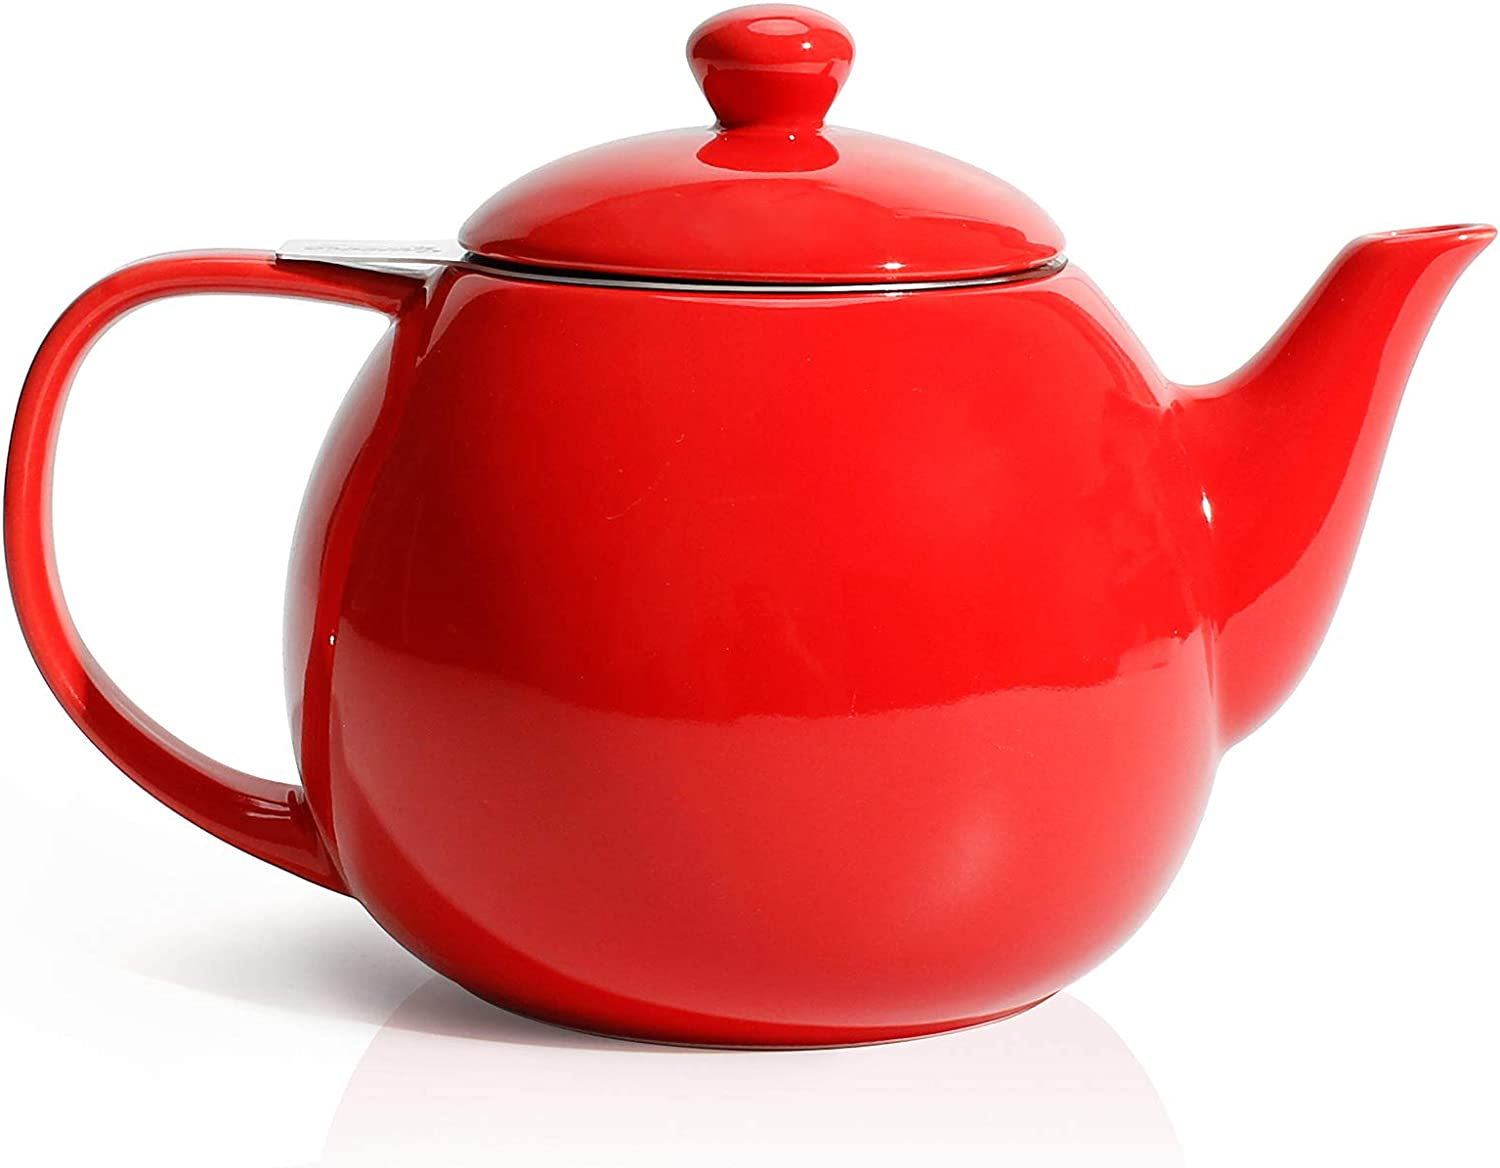 Latest item Sweese 221.104 Teapot Porcelain Tea Pot Steel Al sold out. with In Stainless